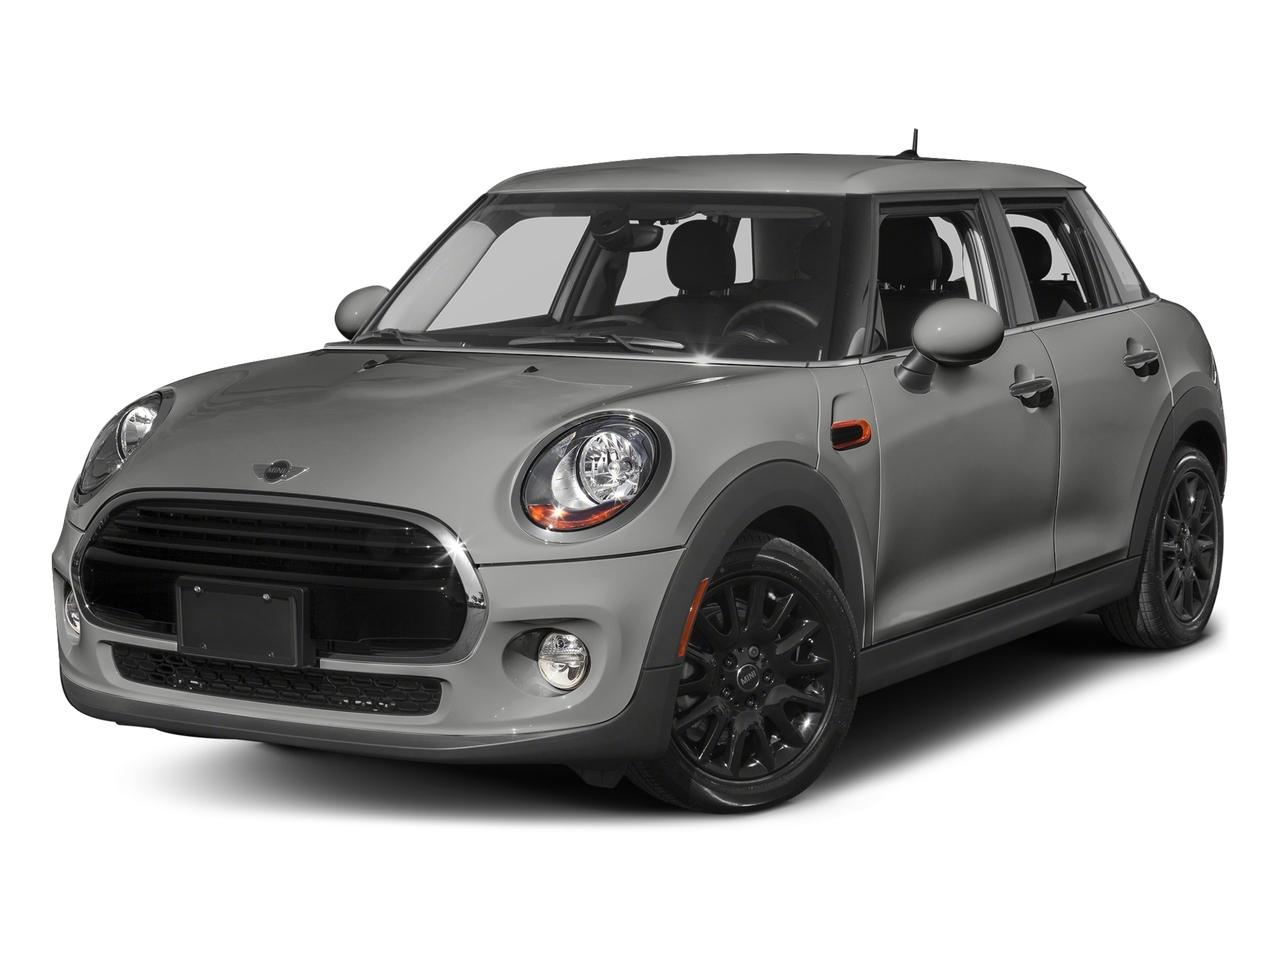 2016 MINI Cooper Hardtop 4 Door Vehicle Photo in Corpus Christi, TX 78411